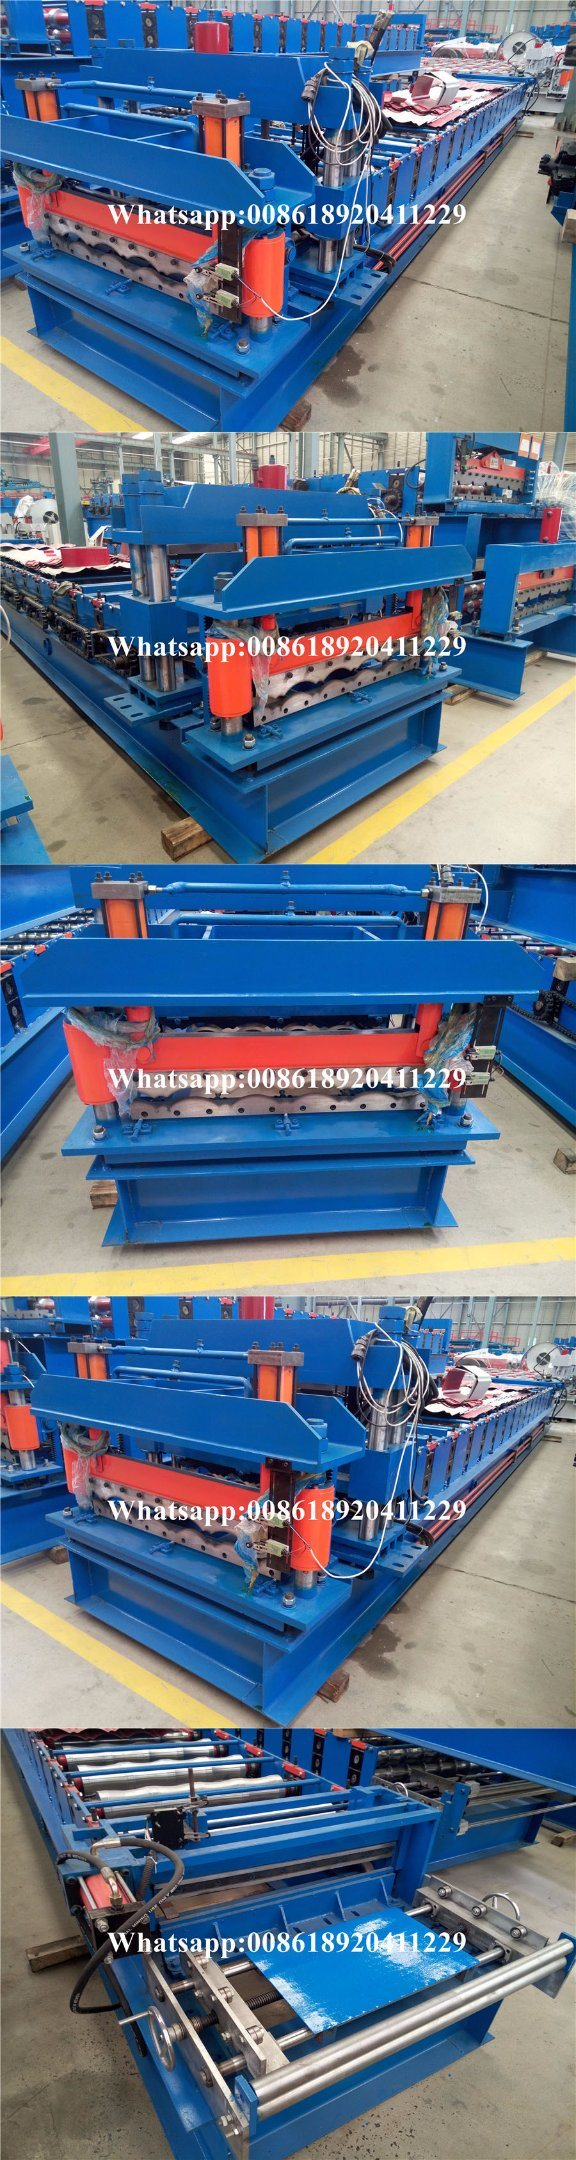 Botou Factory Cold Roll Bending Machine of Roofing Glazed Panel